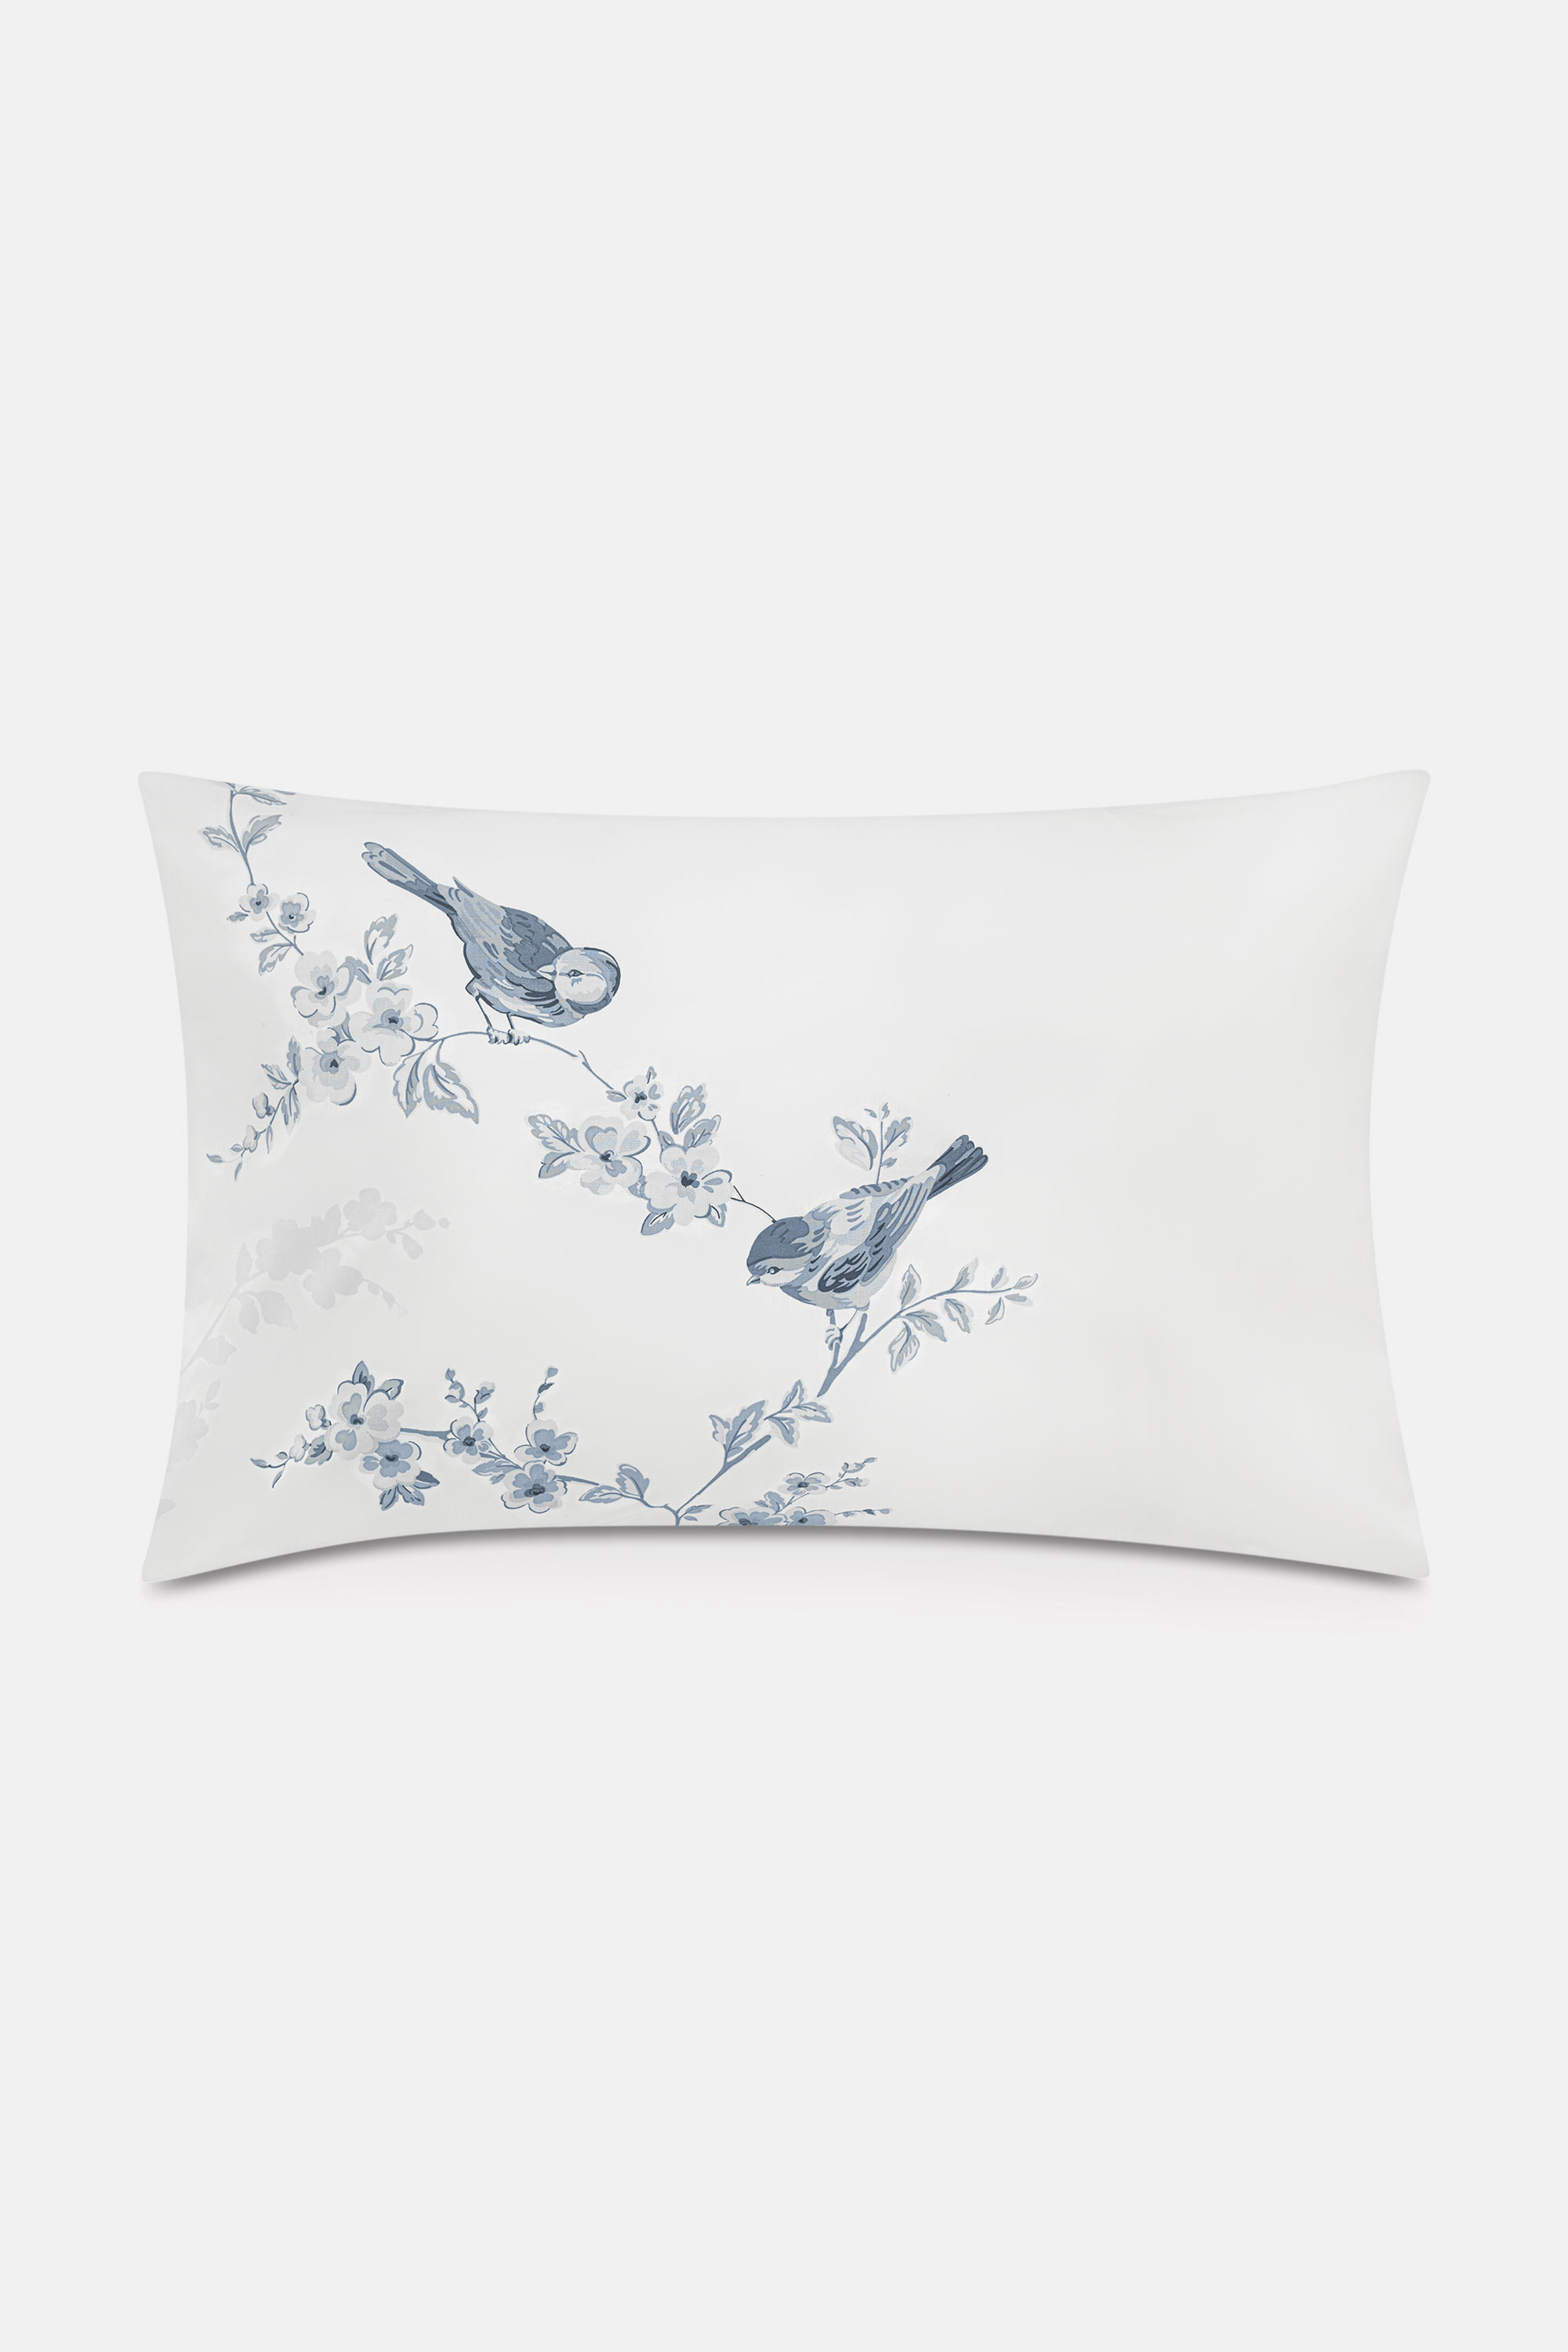 Cath Kidston British Birds Small Set of 2 Reversible Pillowcases in Warm Cream, 100% Cotton, H/W PLW